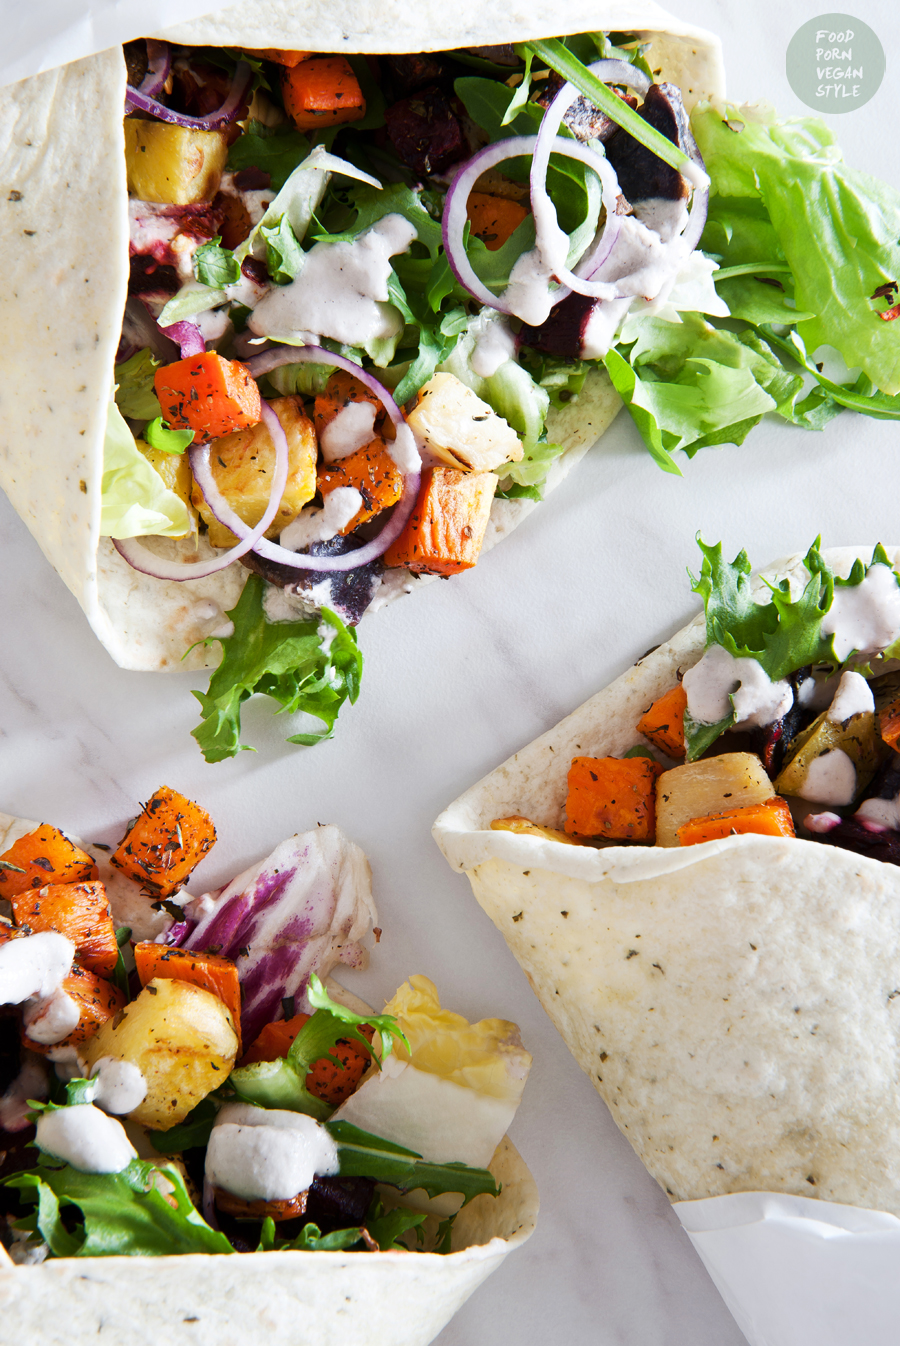 Vegan tortilla wraps with roasted vegetables and herbs